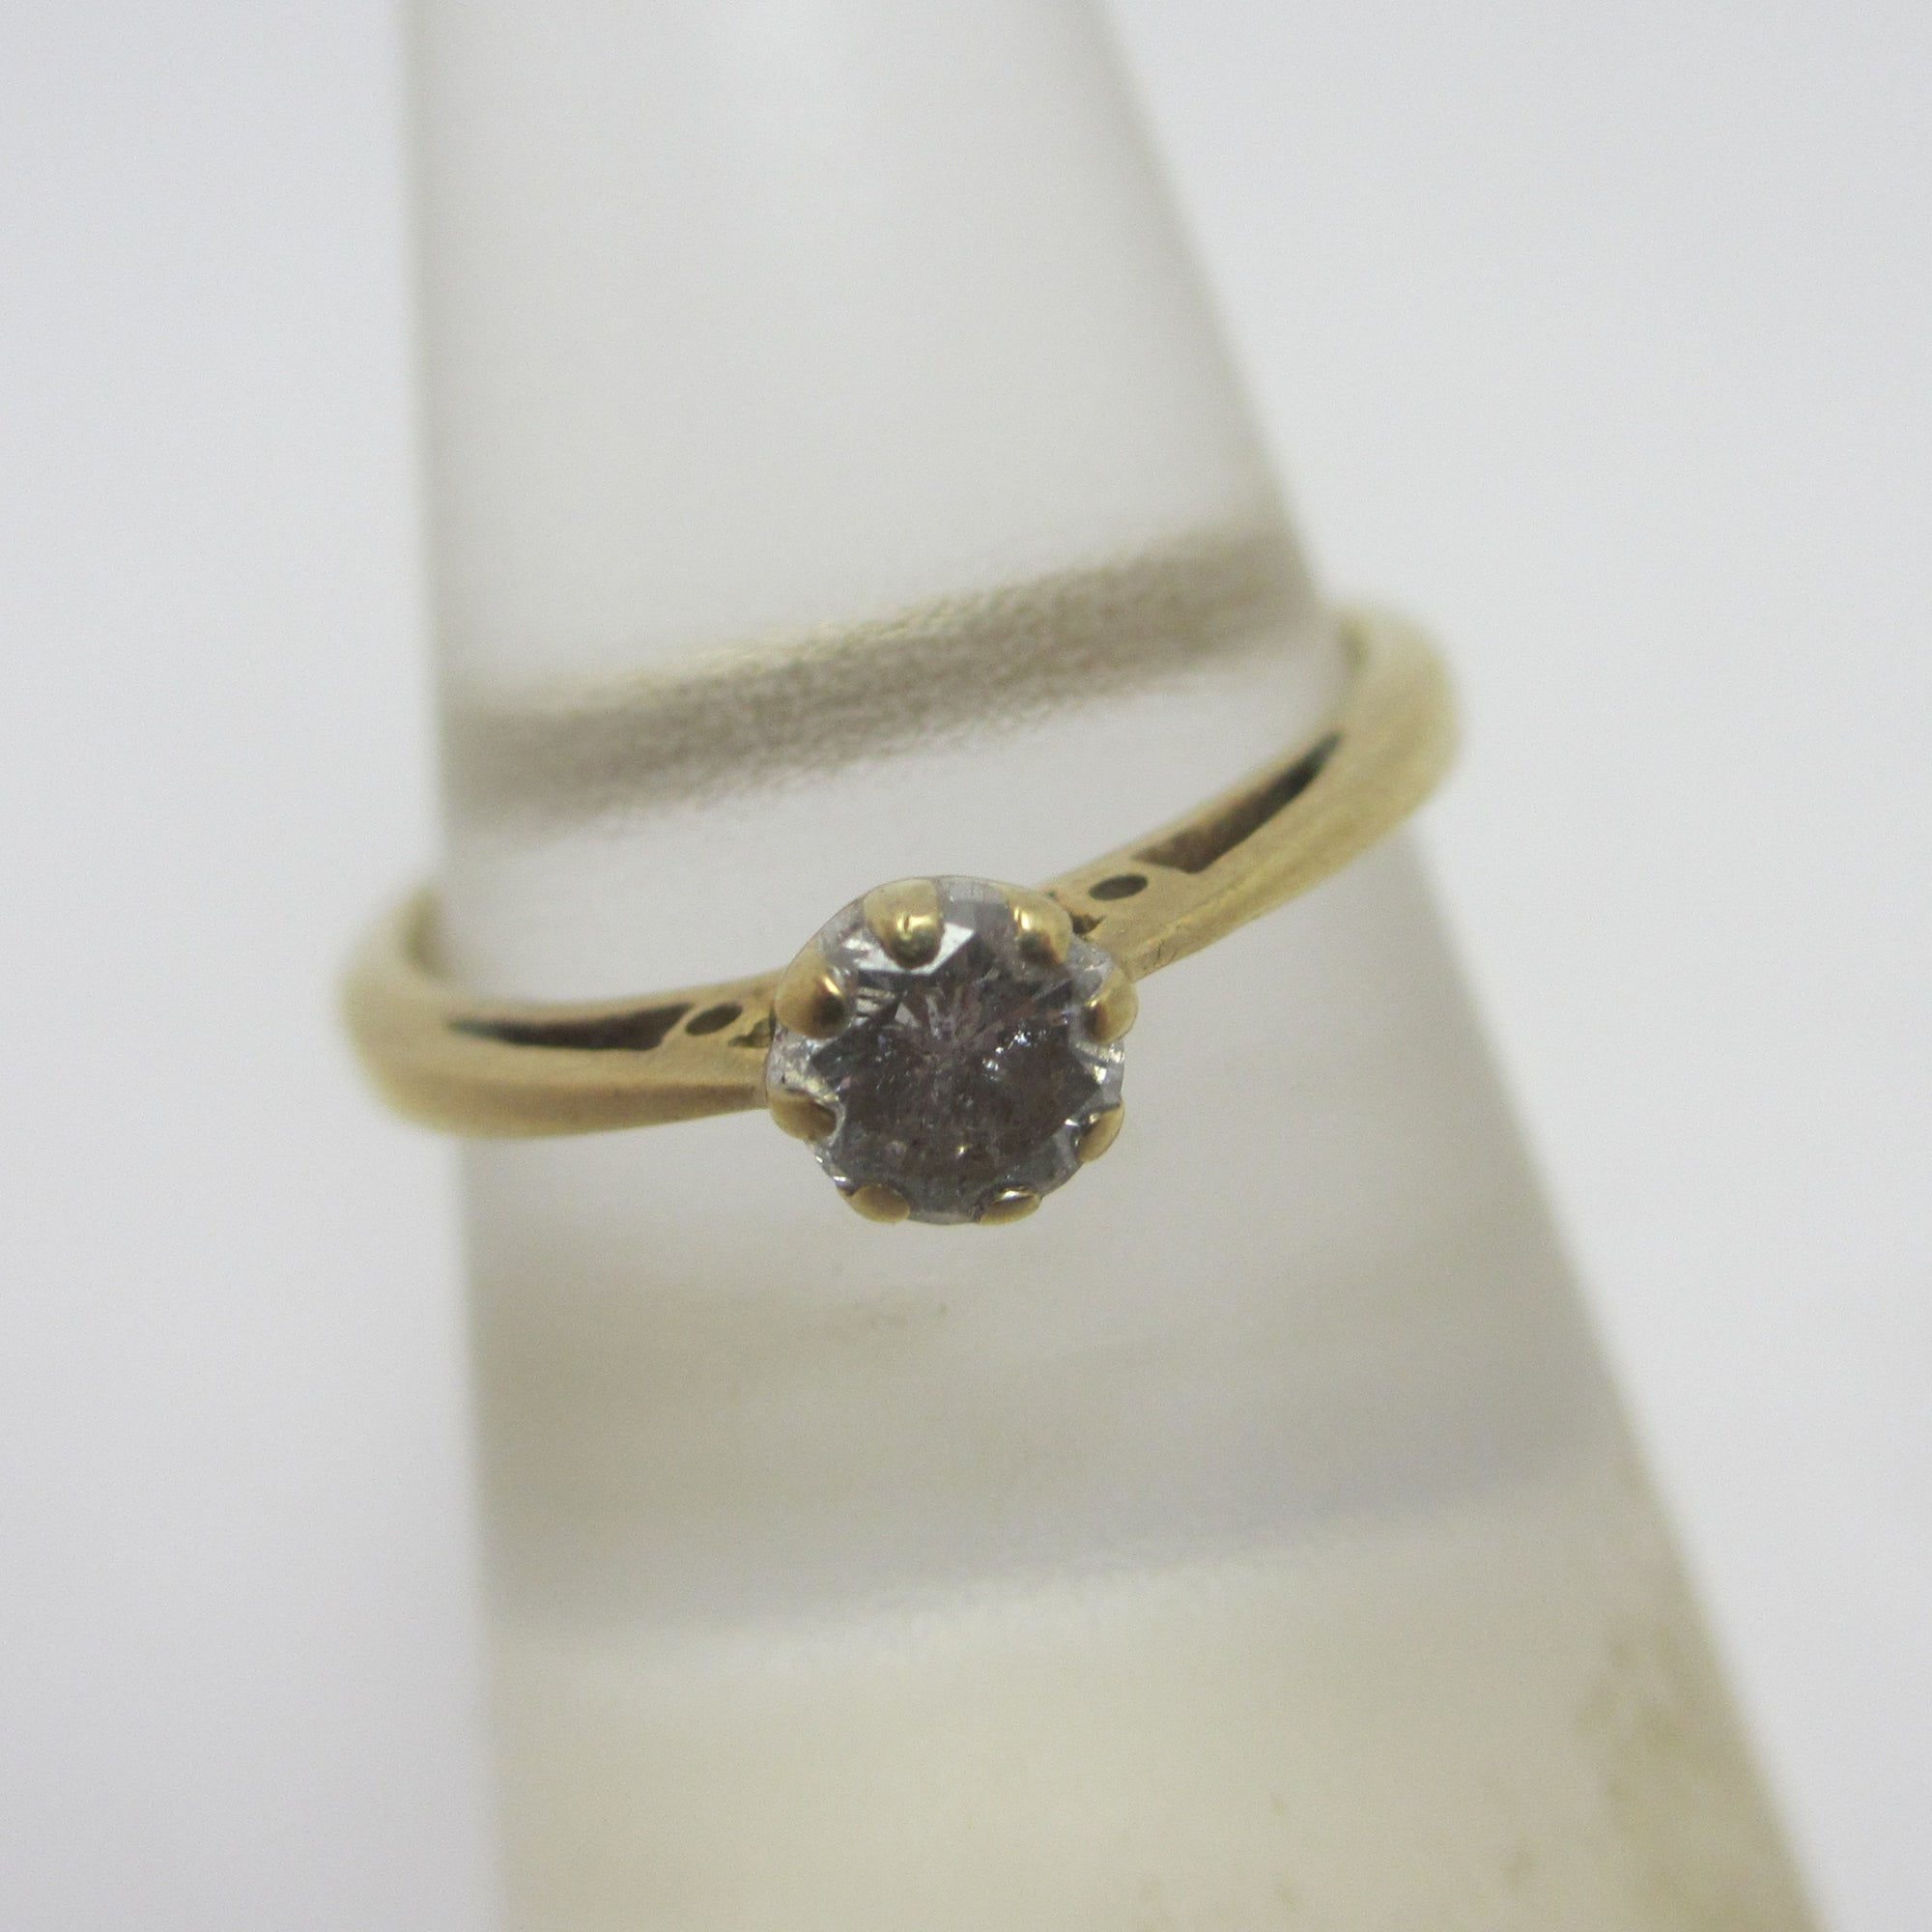 0.25ct Diamond 9k Gold Solitaire Ring Vintage c1970